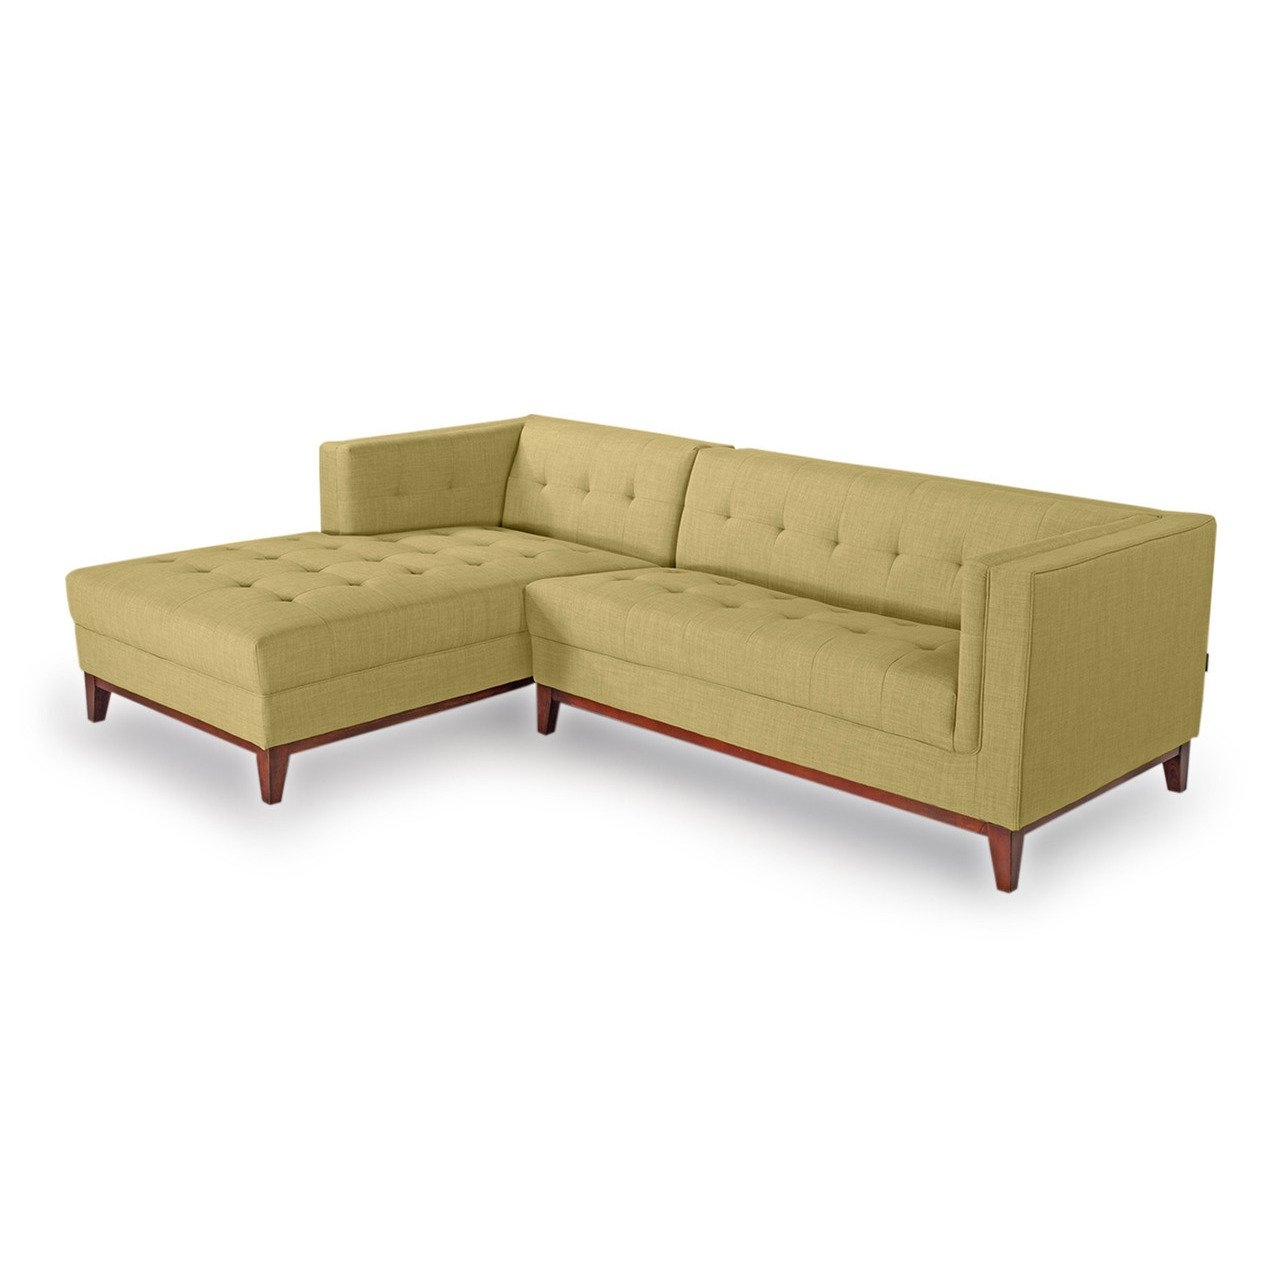 Shop Kardiel Harrison Mid Century Modern Twill Loft Sofa Left Chaise Intended For Loft Arm Sofa Chairs (View 22 of 25)